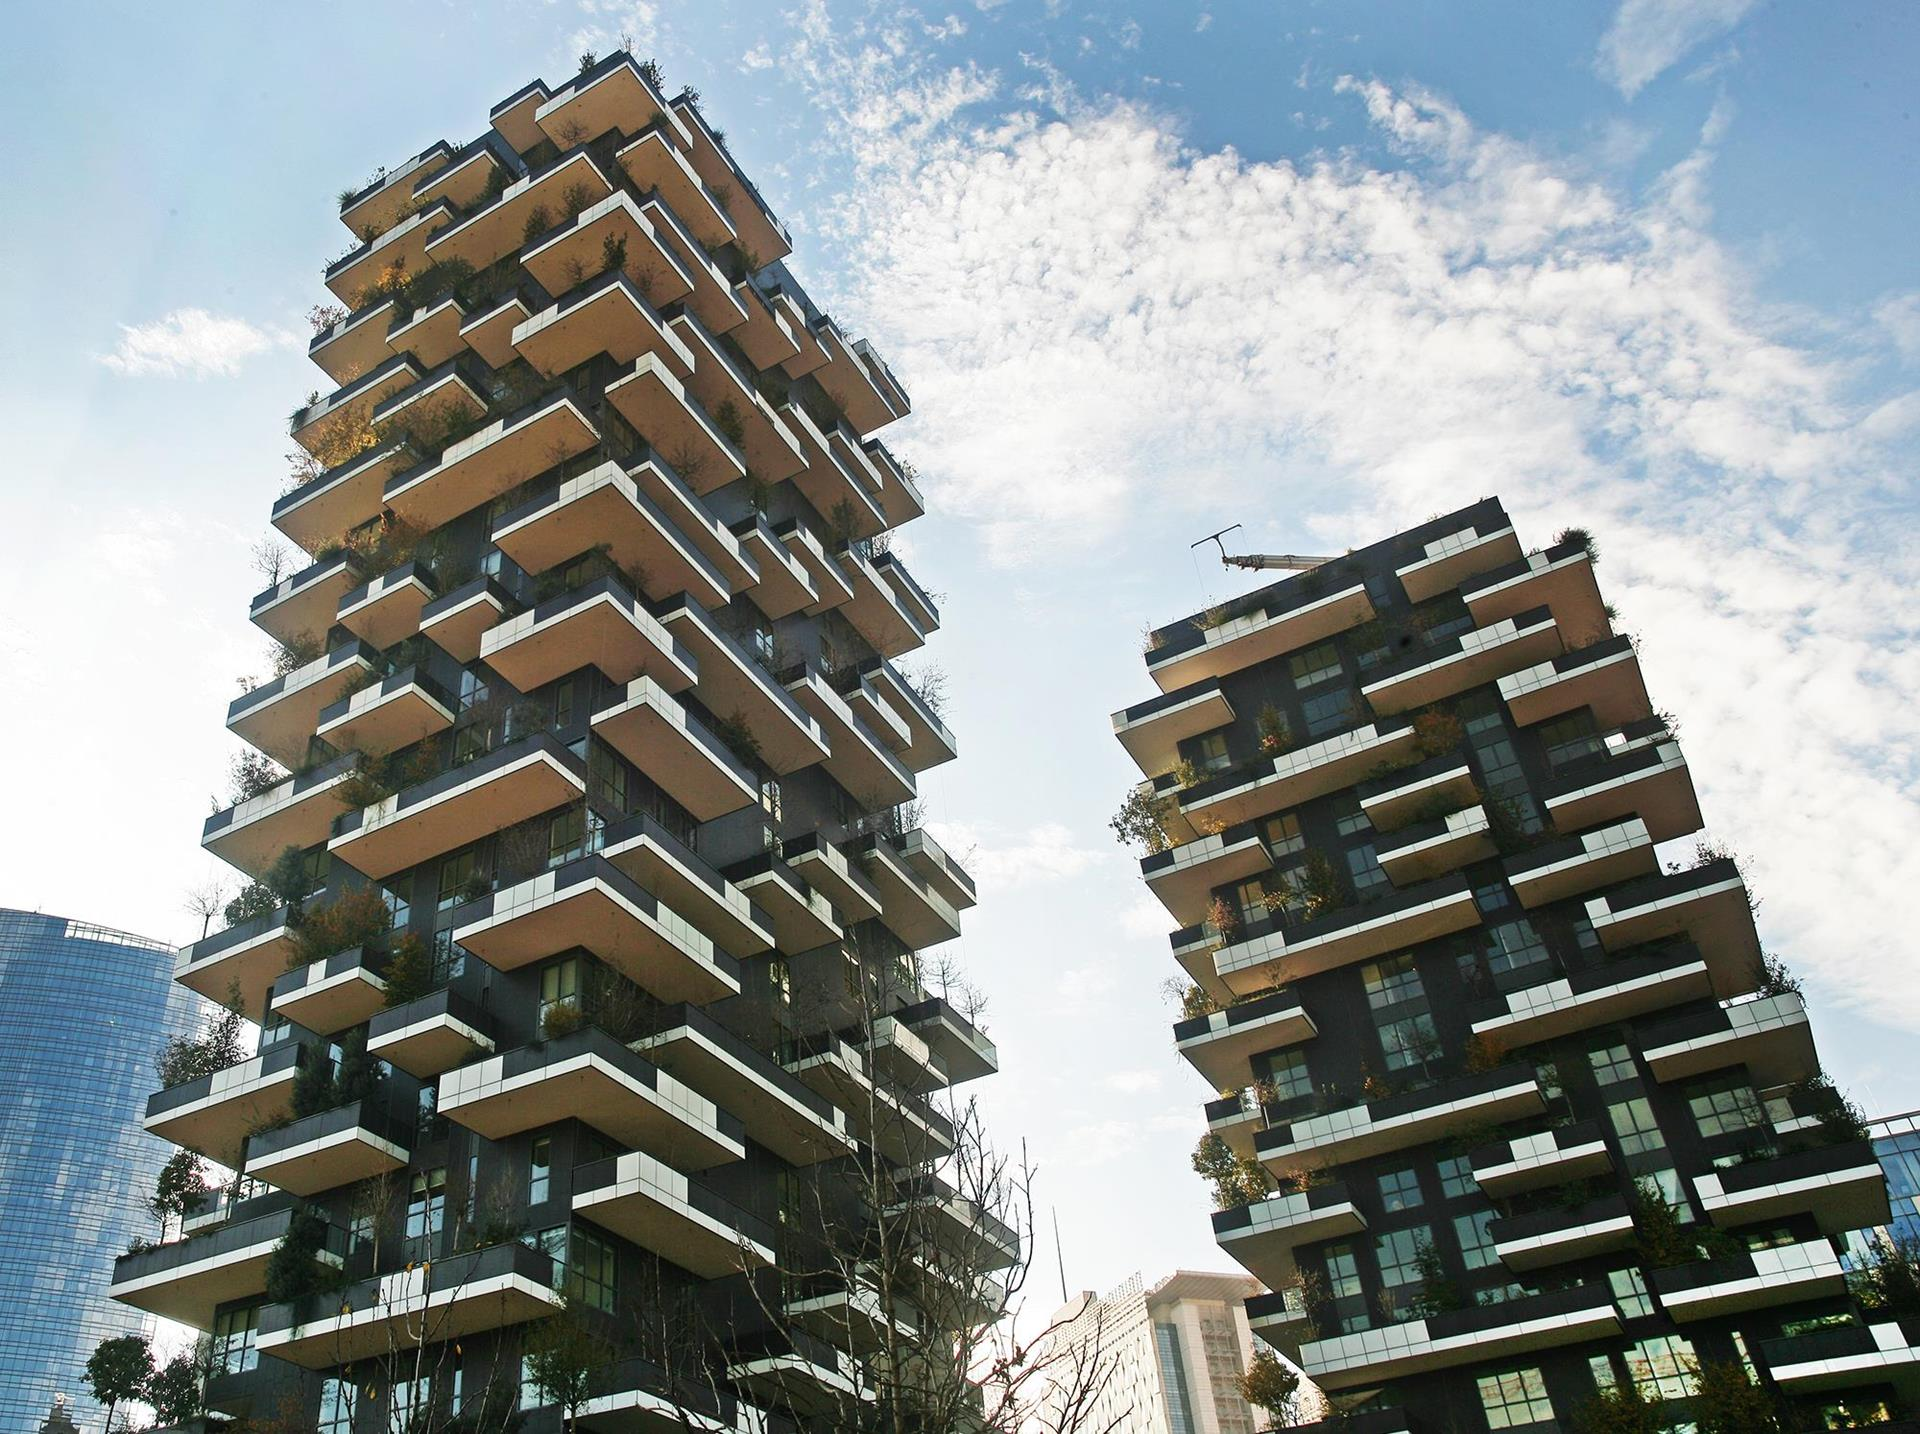 Bosco verticale: Photo 2